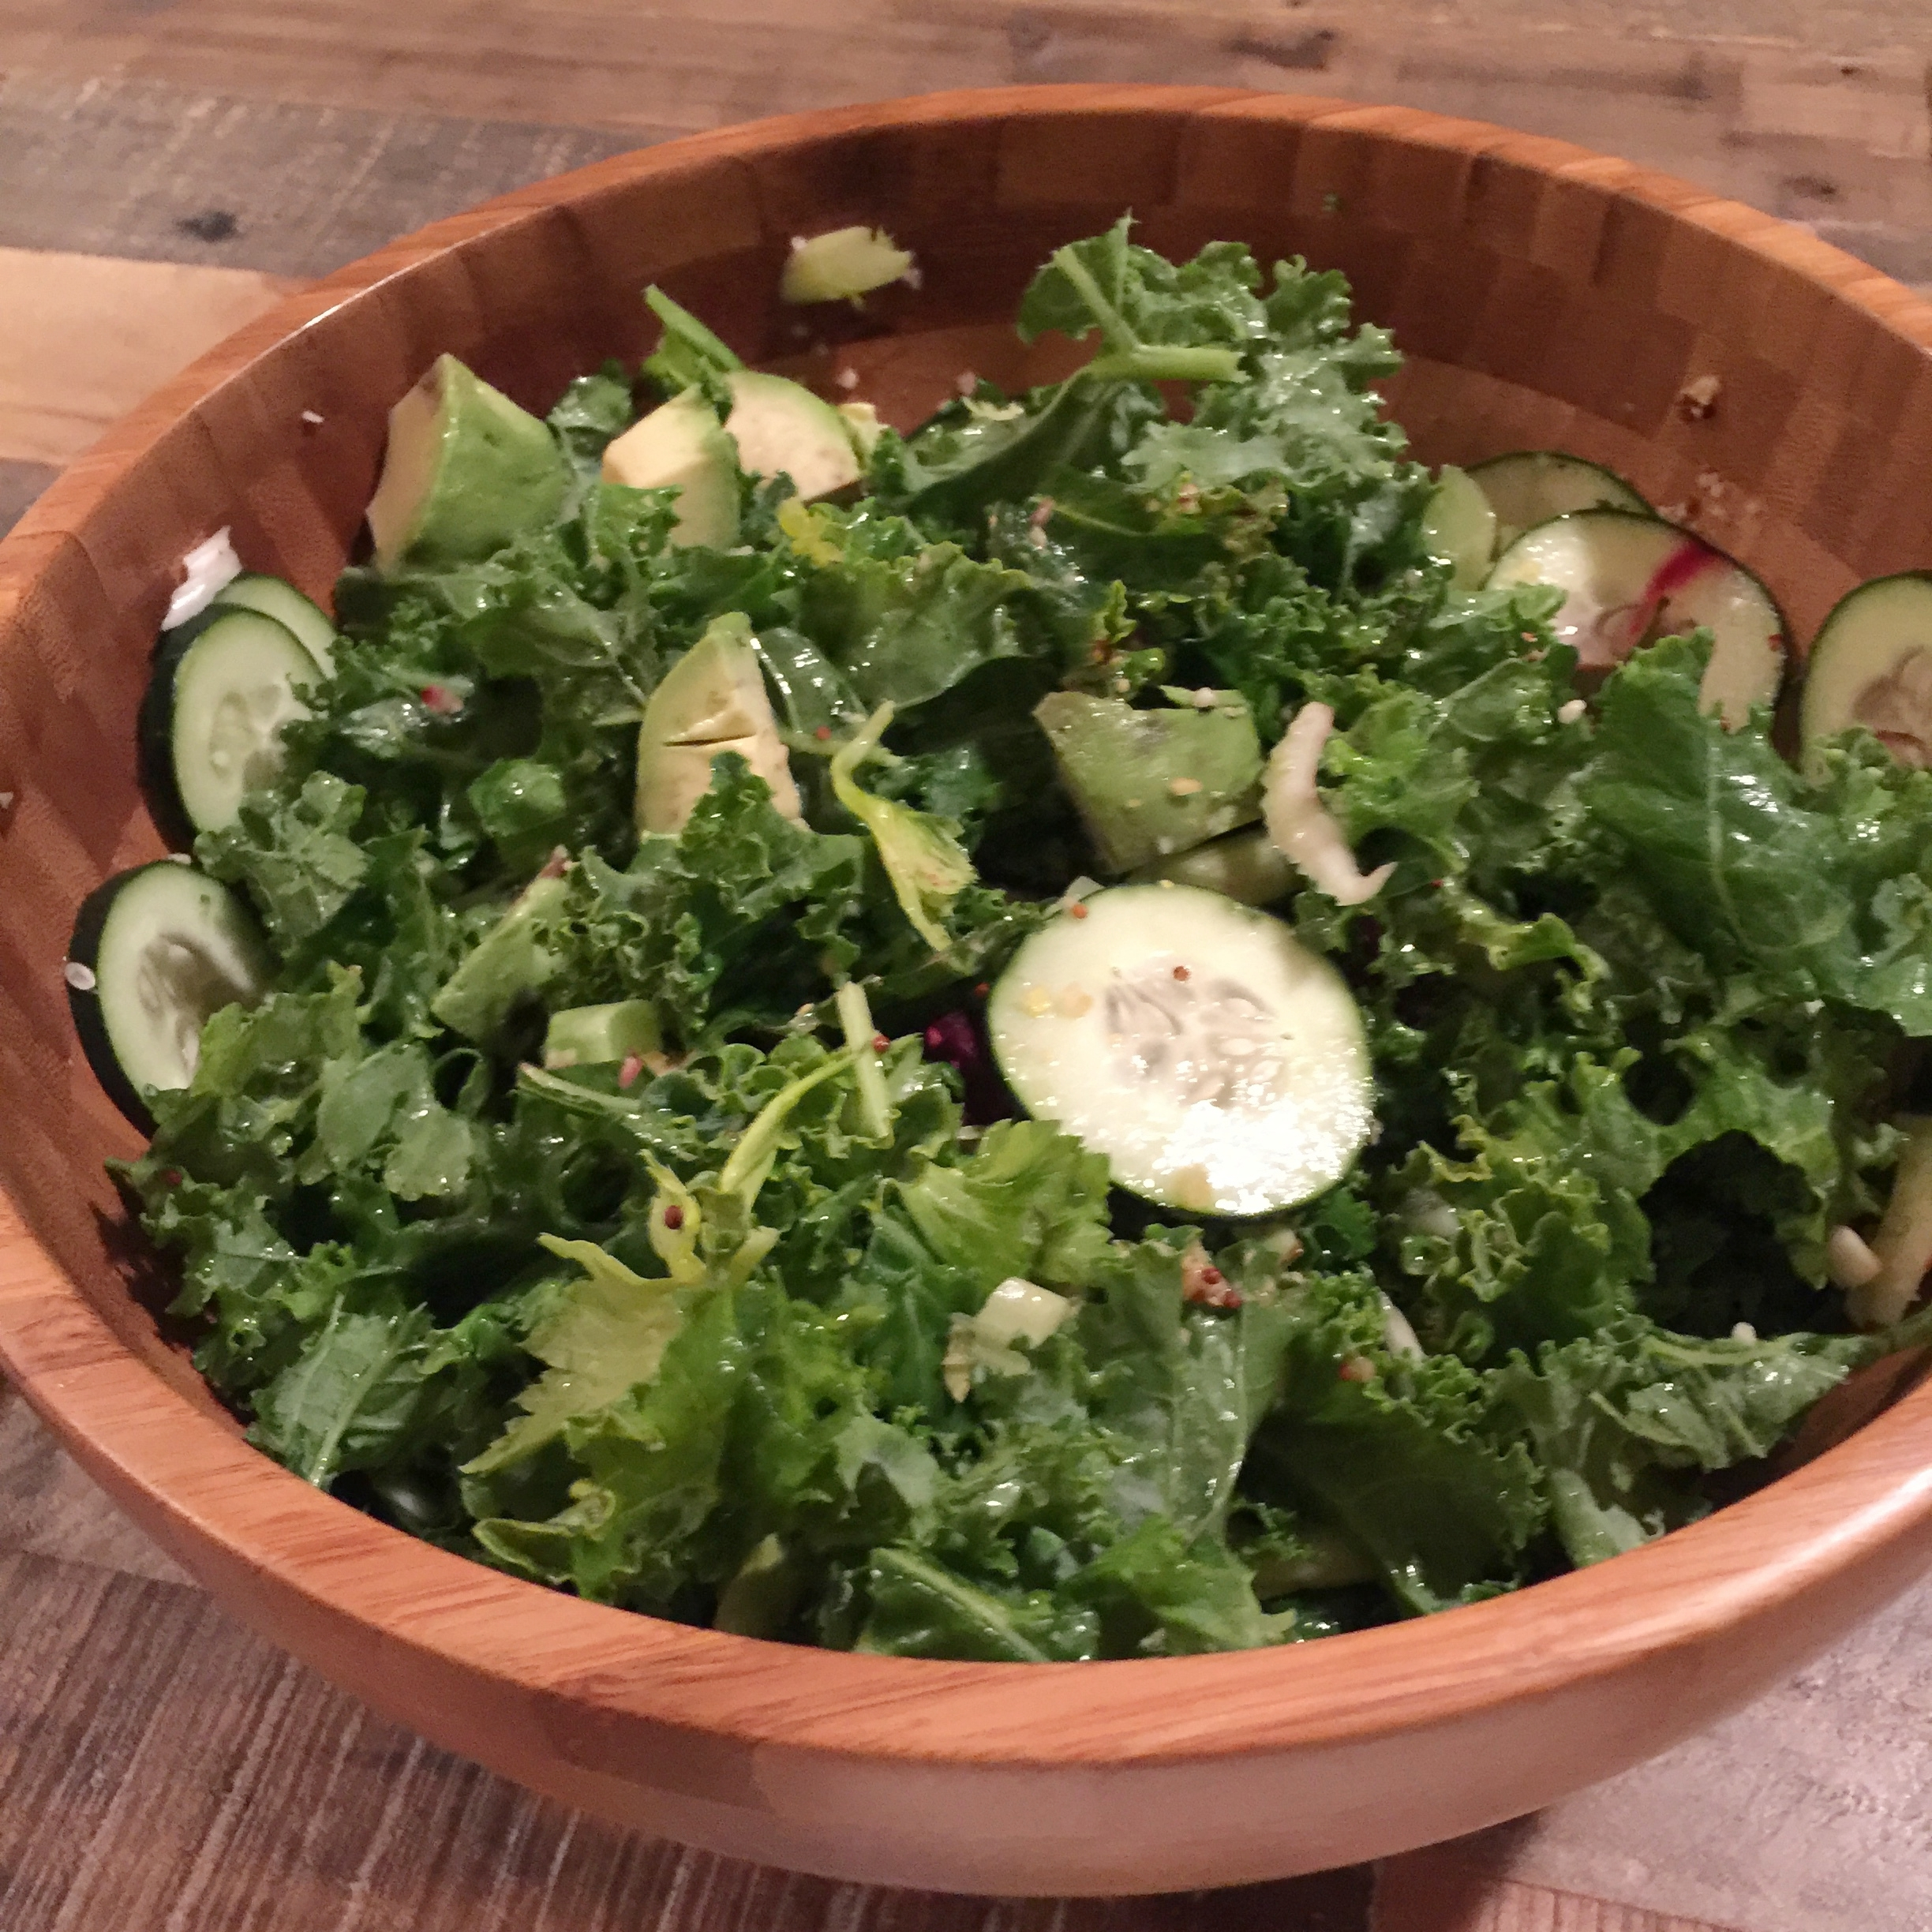 Tateki's big green salad